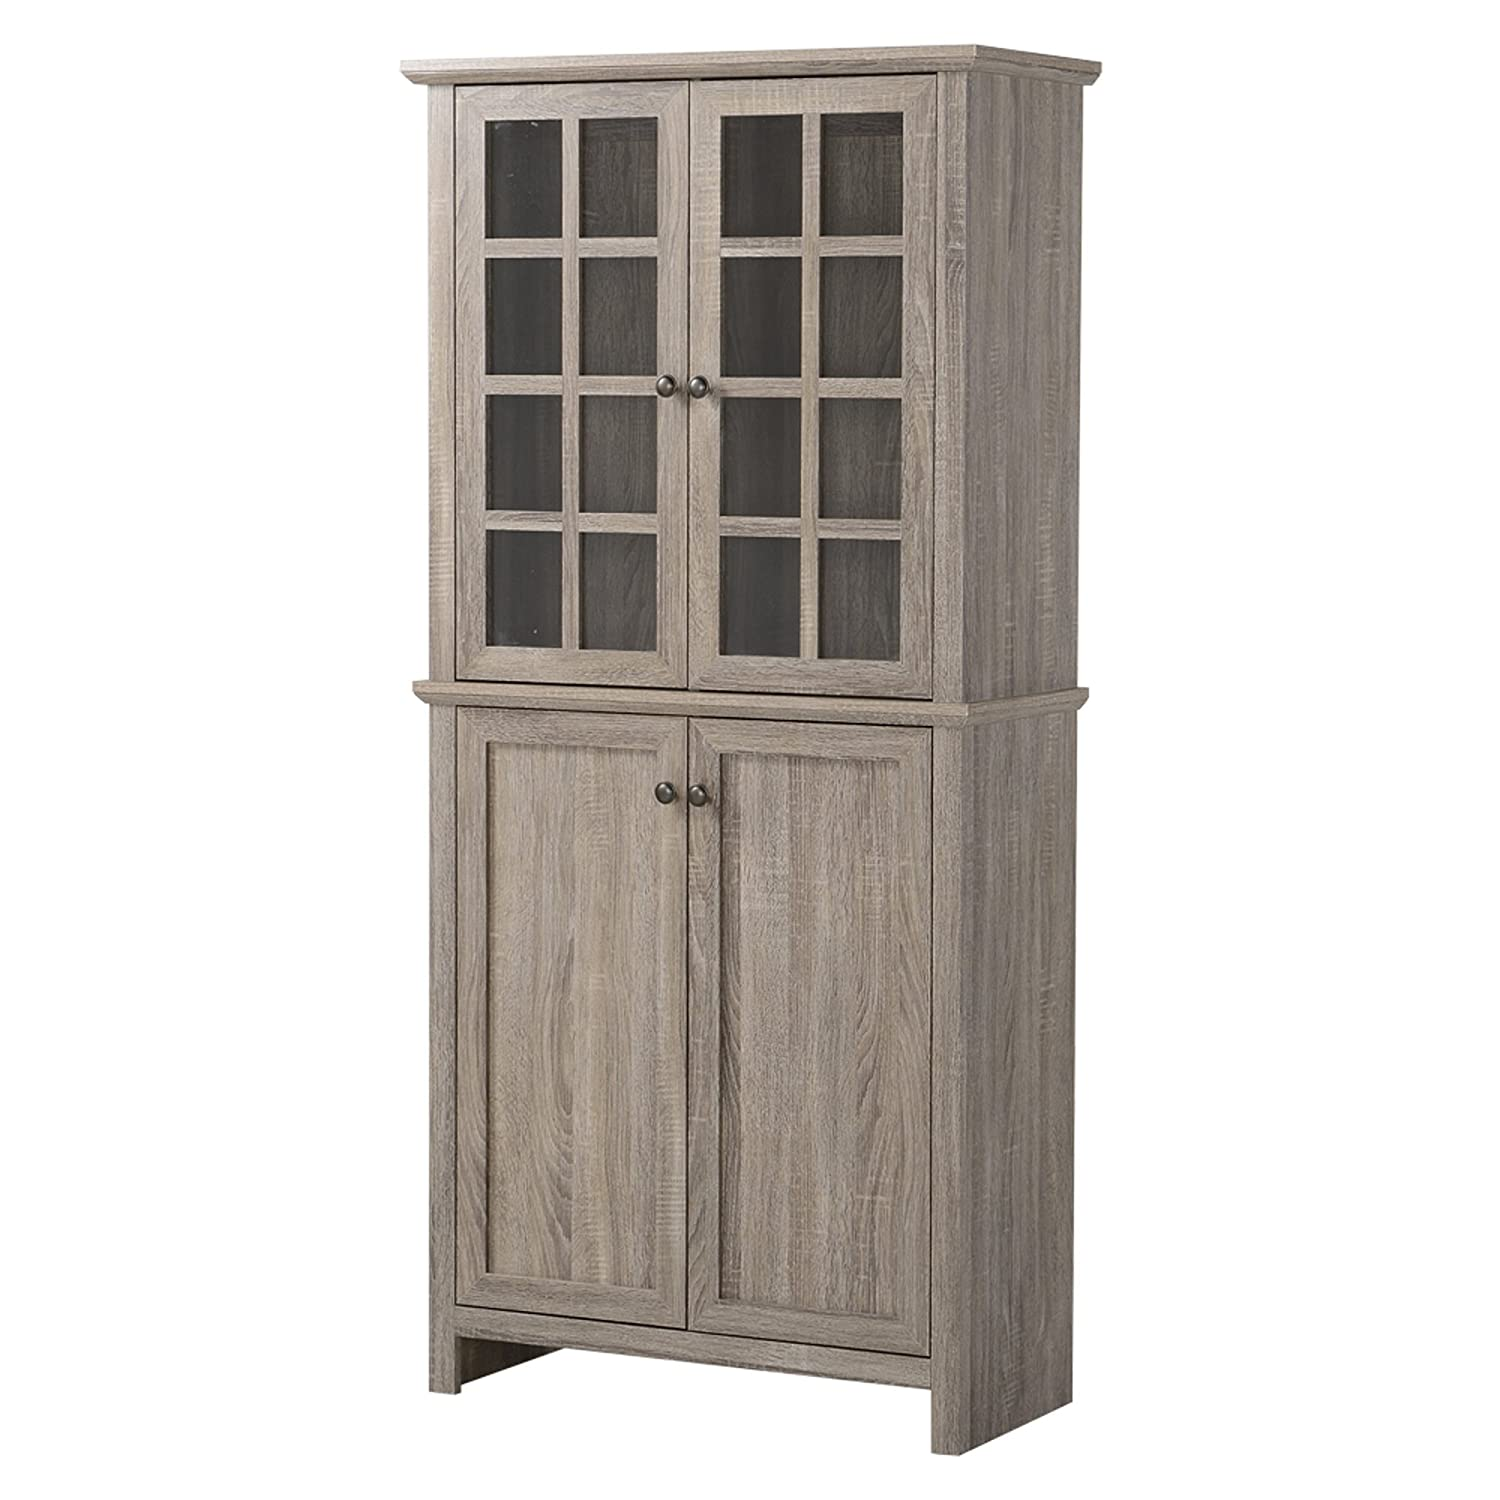 Storage Cabinet With Locking Doors Office Storage Cabinets Amazoncom Office Furniture Lighting